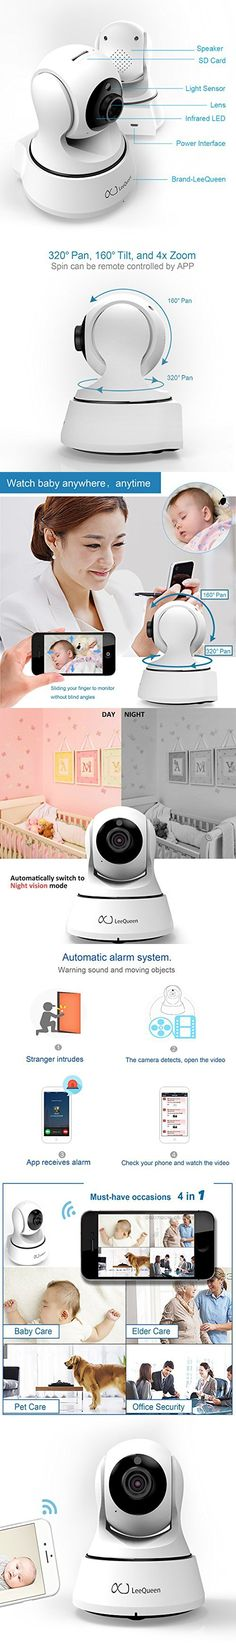 Wireless Baby Monitor - Digital Audio Intelligent Camera with HD 720P & Intelligent Motion Alerts & Talkback System & Night Vision for Android / iPhone / iPad / Windows LeeQueen Exclusive Sale